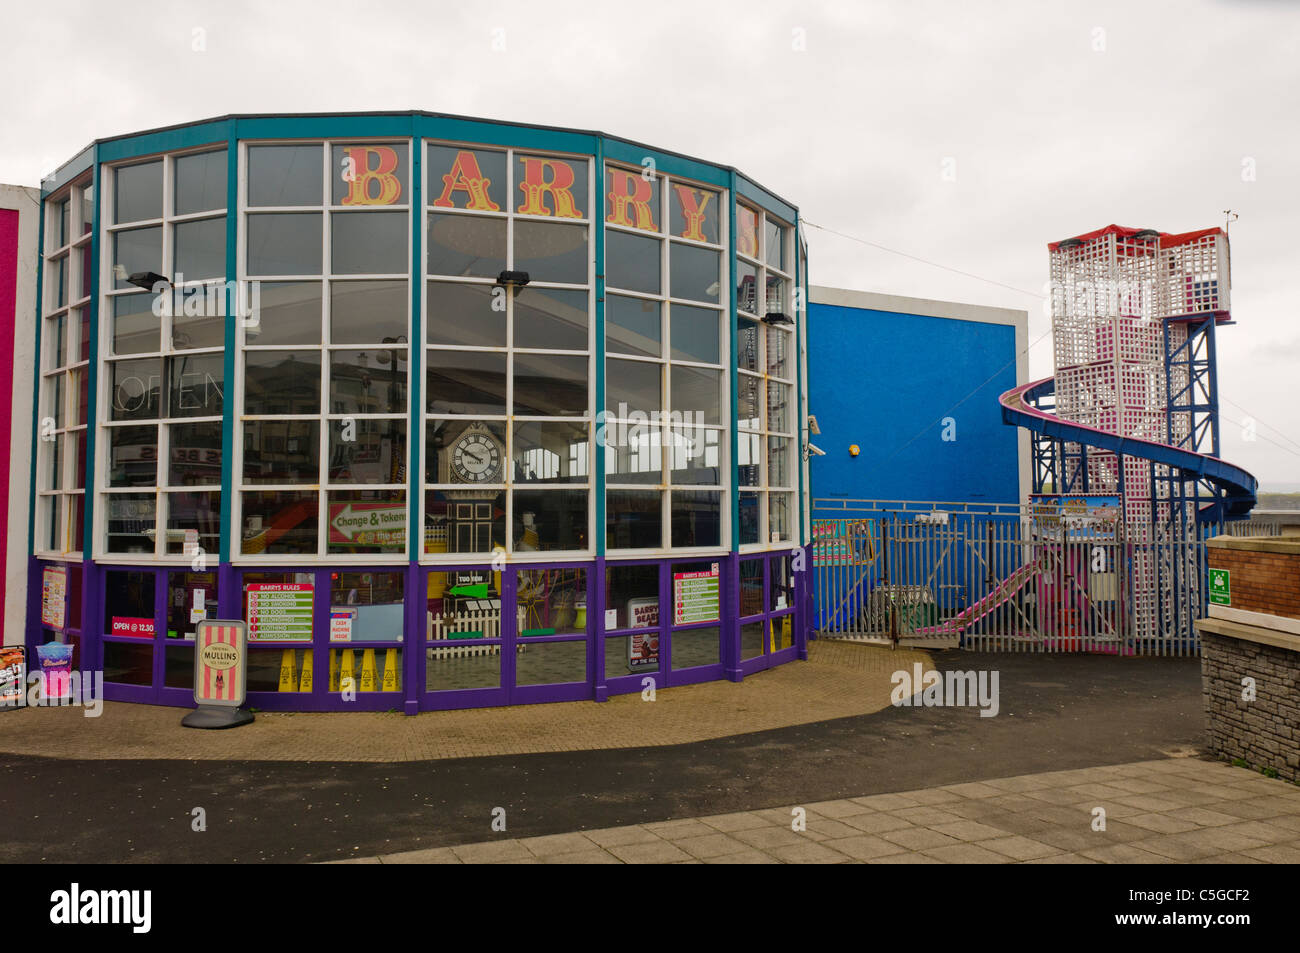 Front of Barry's Amusements, Portrush - Stock Image